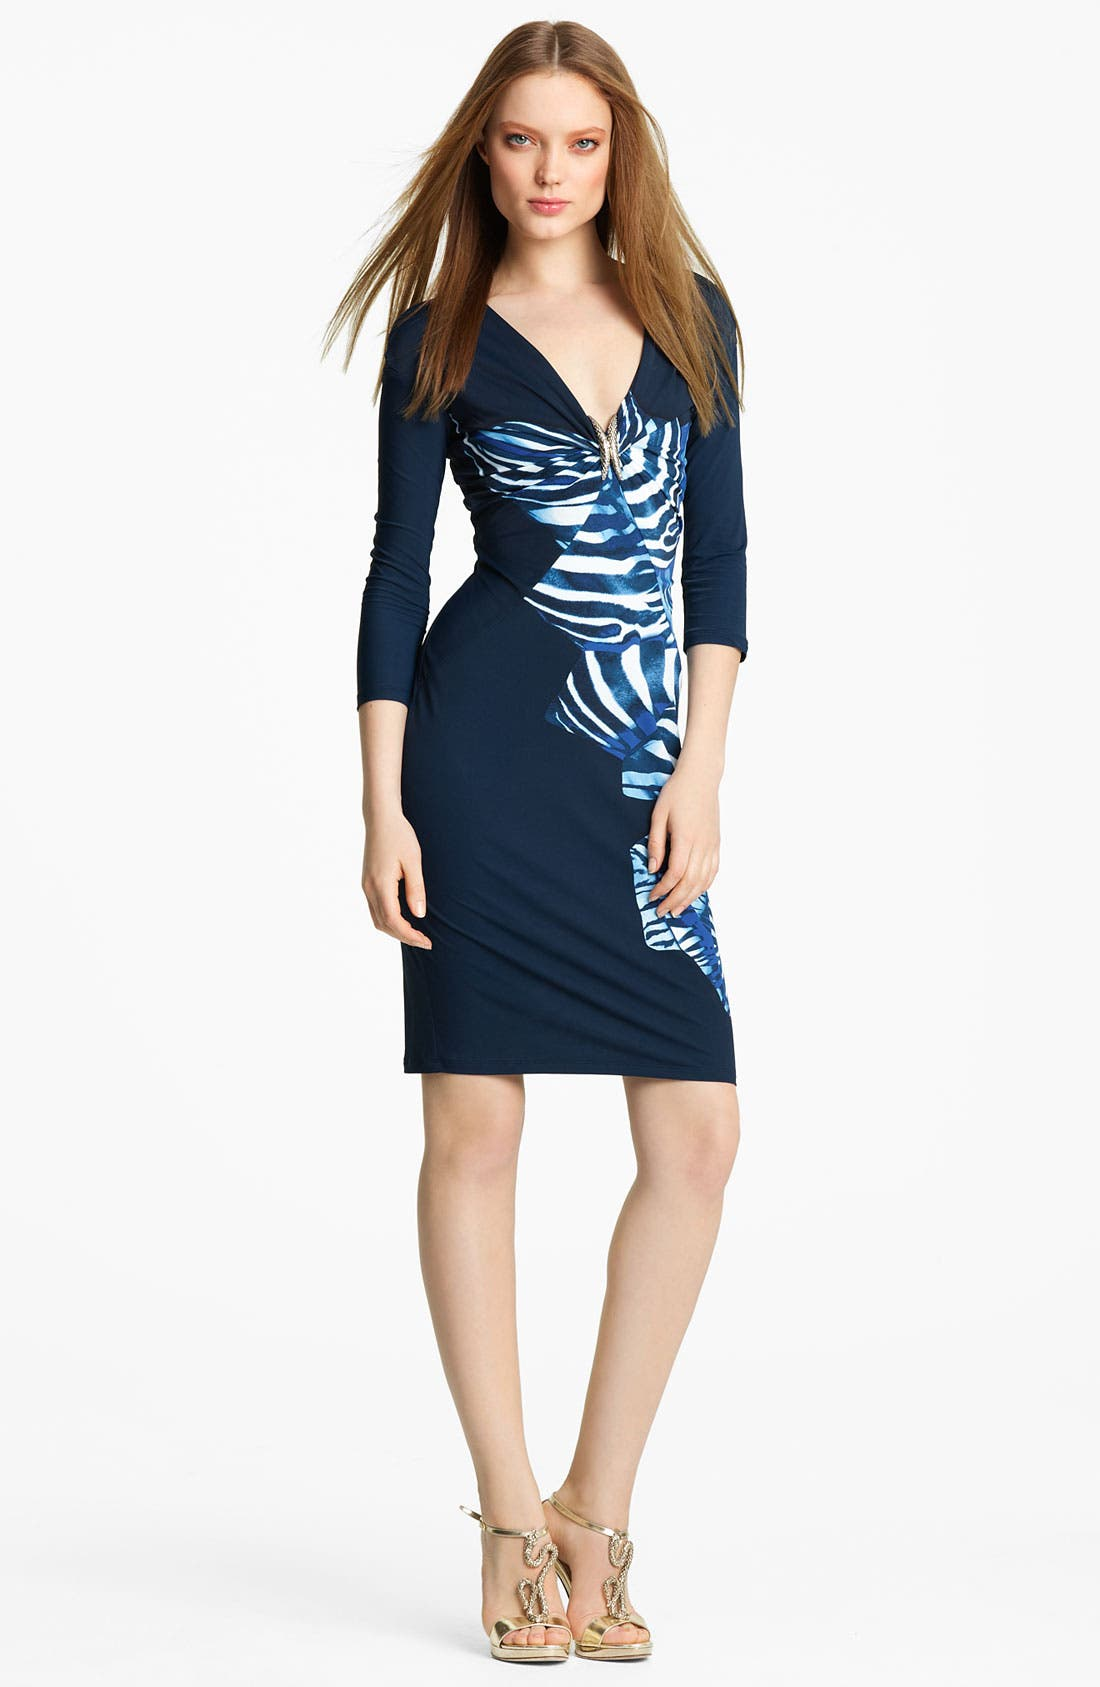 Main Image - Roberto Cavalli Zebra Print Dress